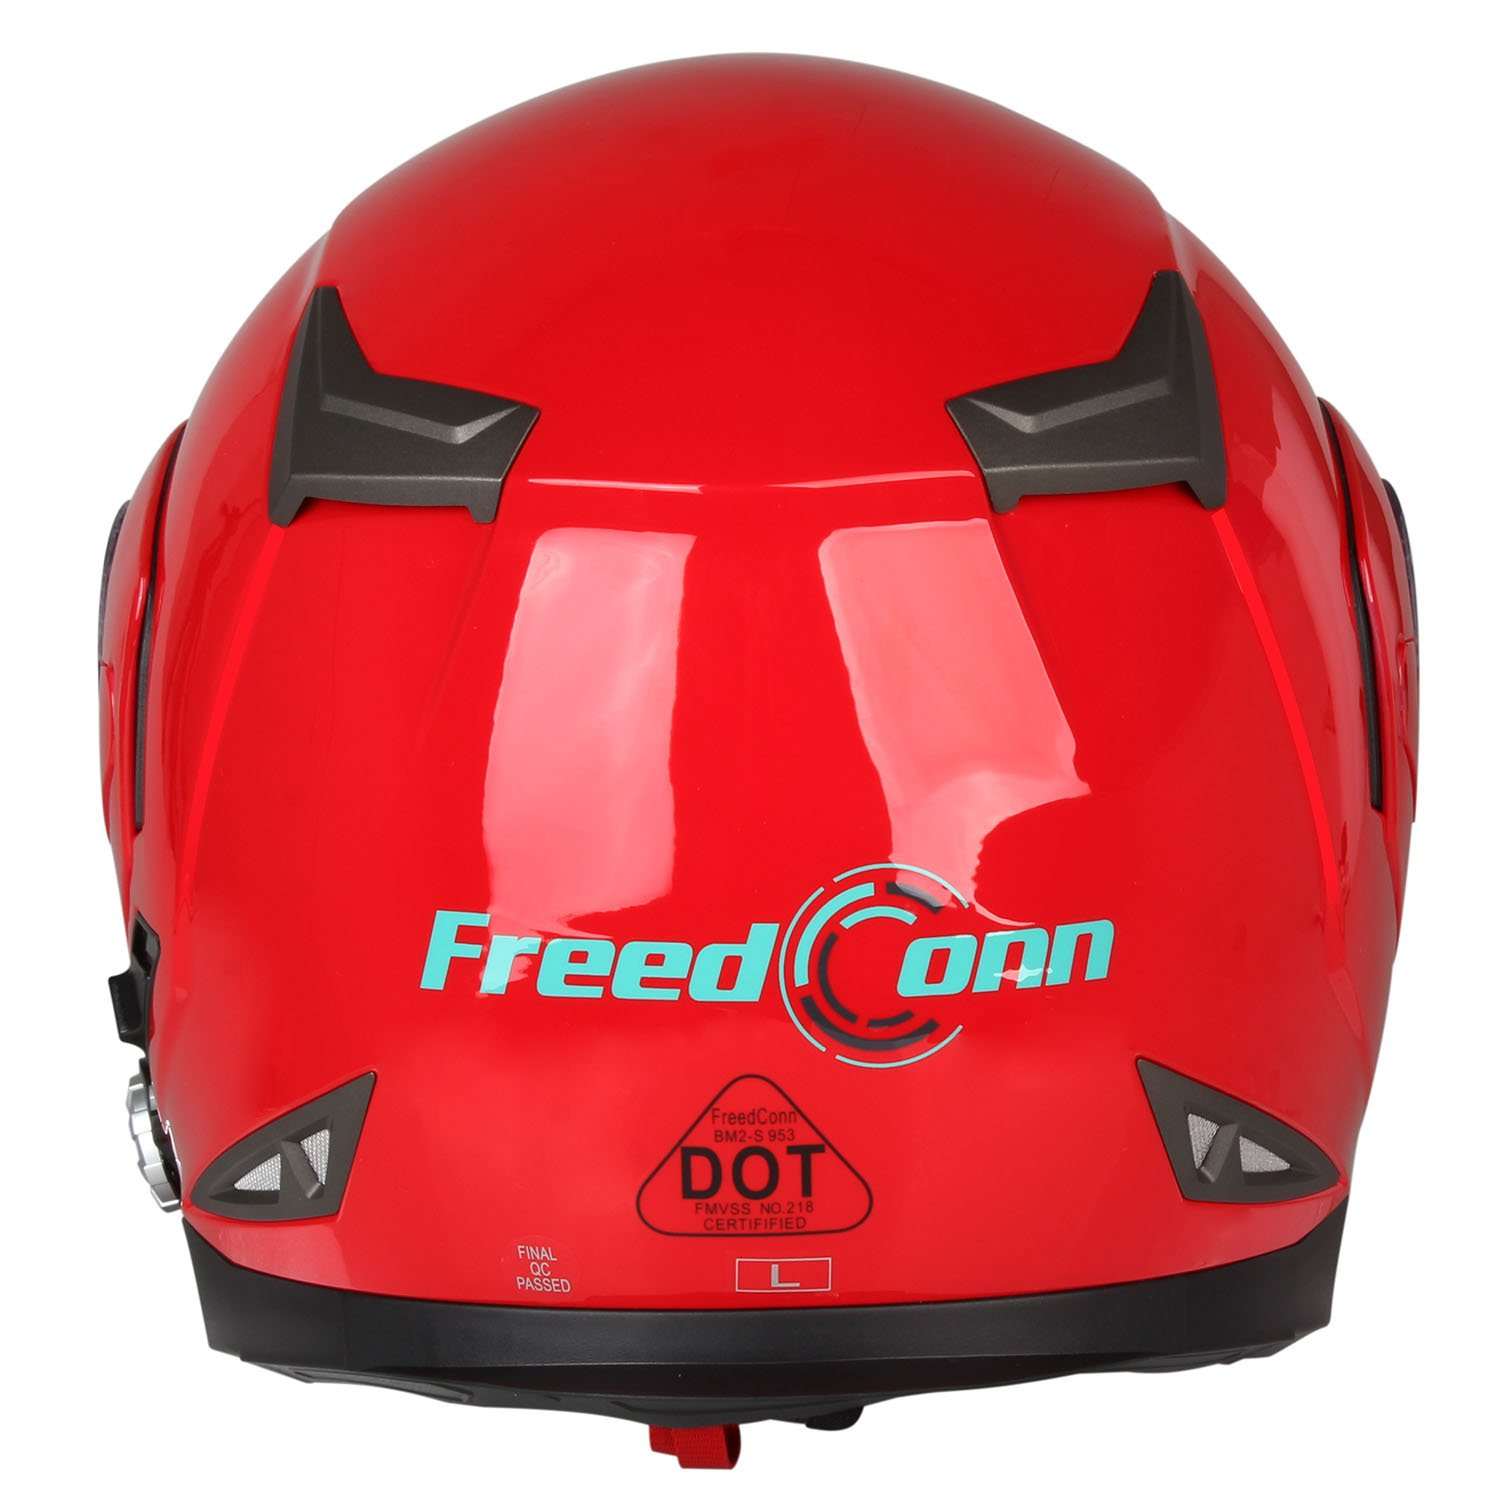 Motorcycle Bluetooth Helmets,FreedConn Flip up Dual Visors Full Face Helmet,Built-in Integrated Intercom Communication System(Range 500M,2-3Riders Pairing,FM radio,Waterproof,L,Red) by FreedConn (Image #10)